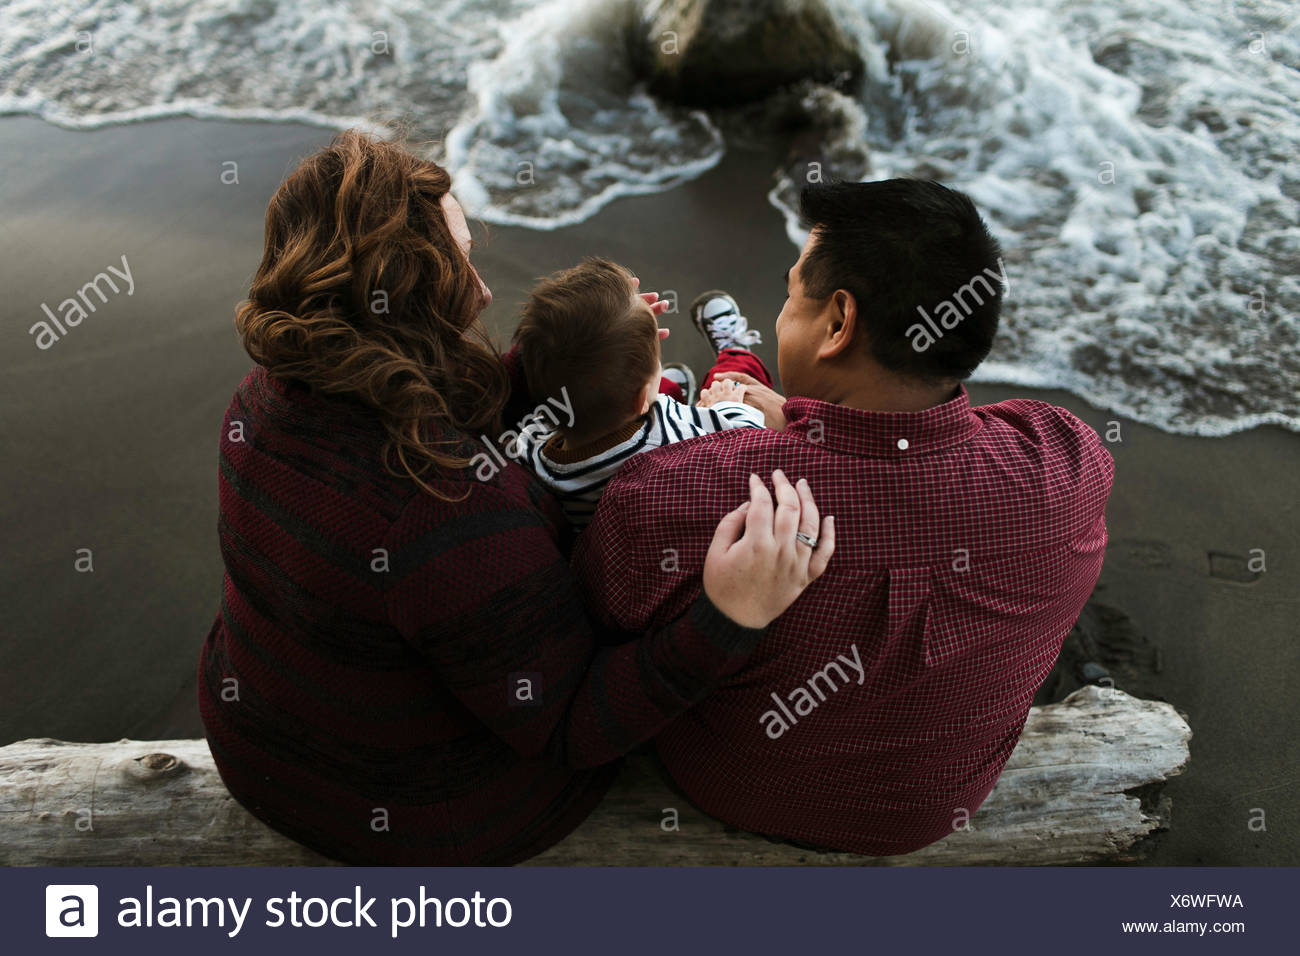 Rear view of mother and father sitting on beach - Stock Image